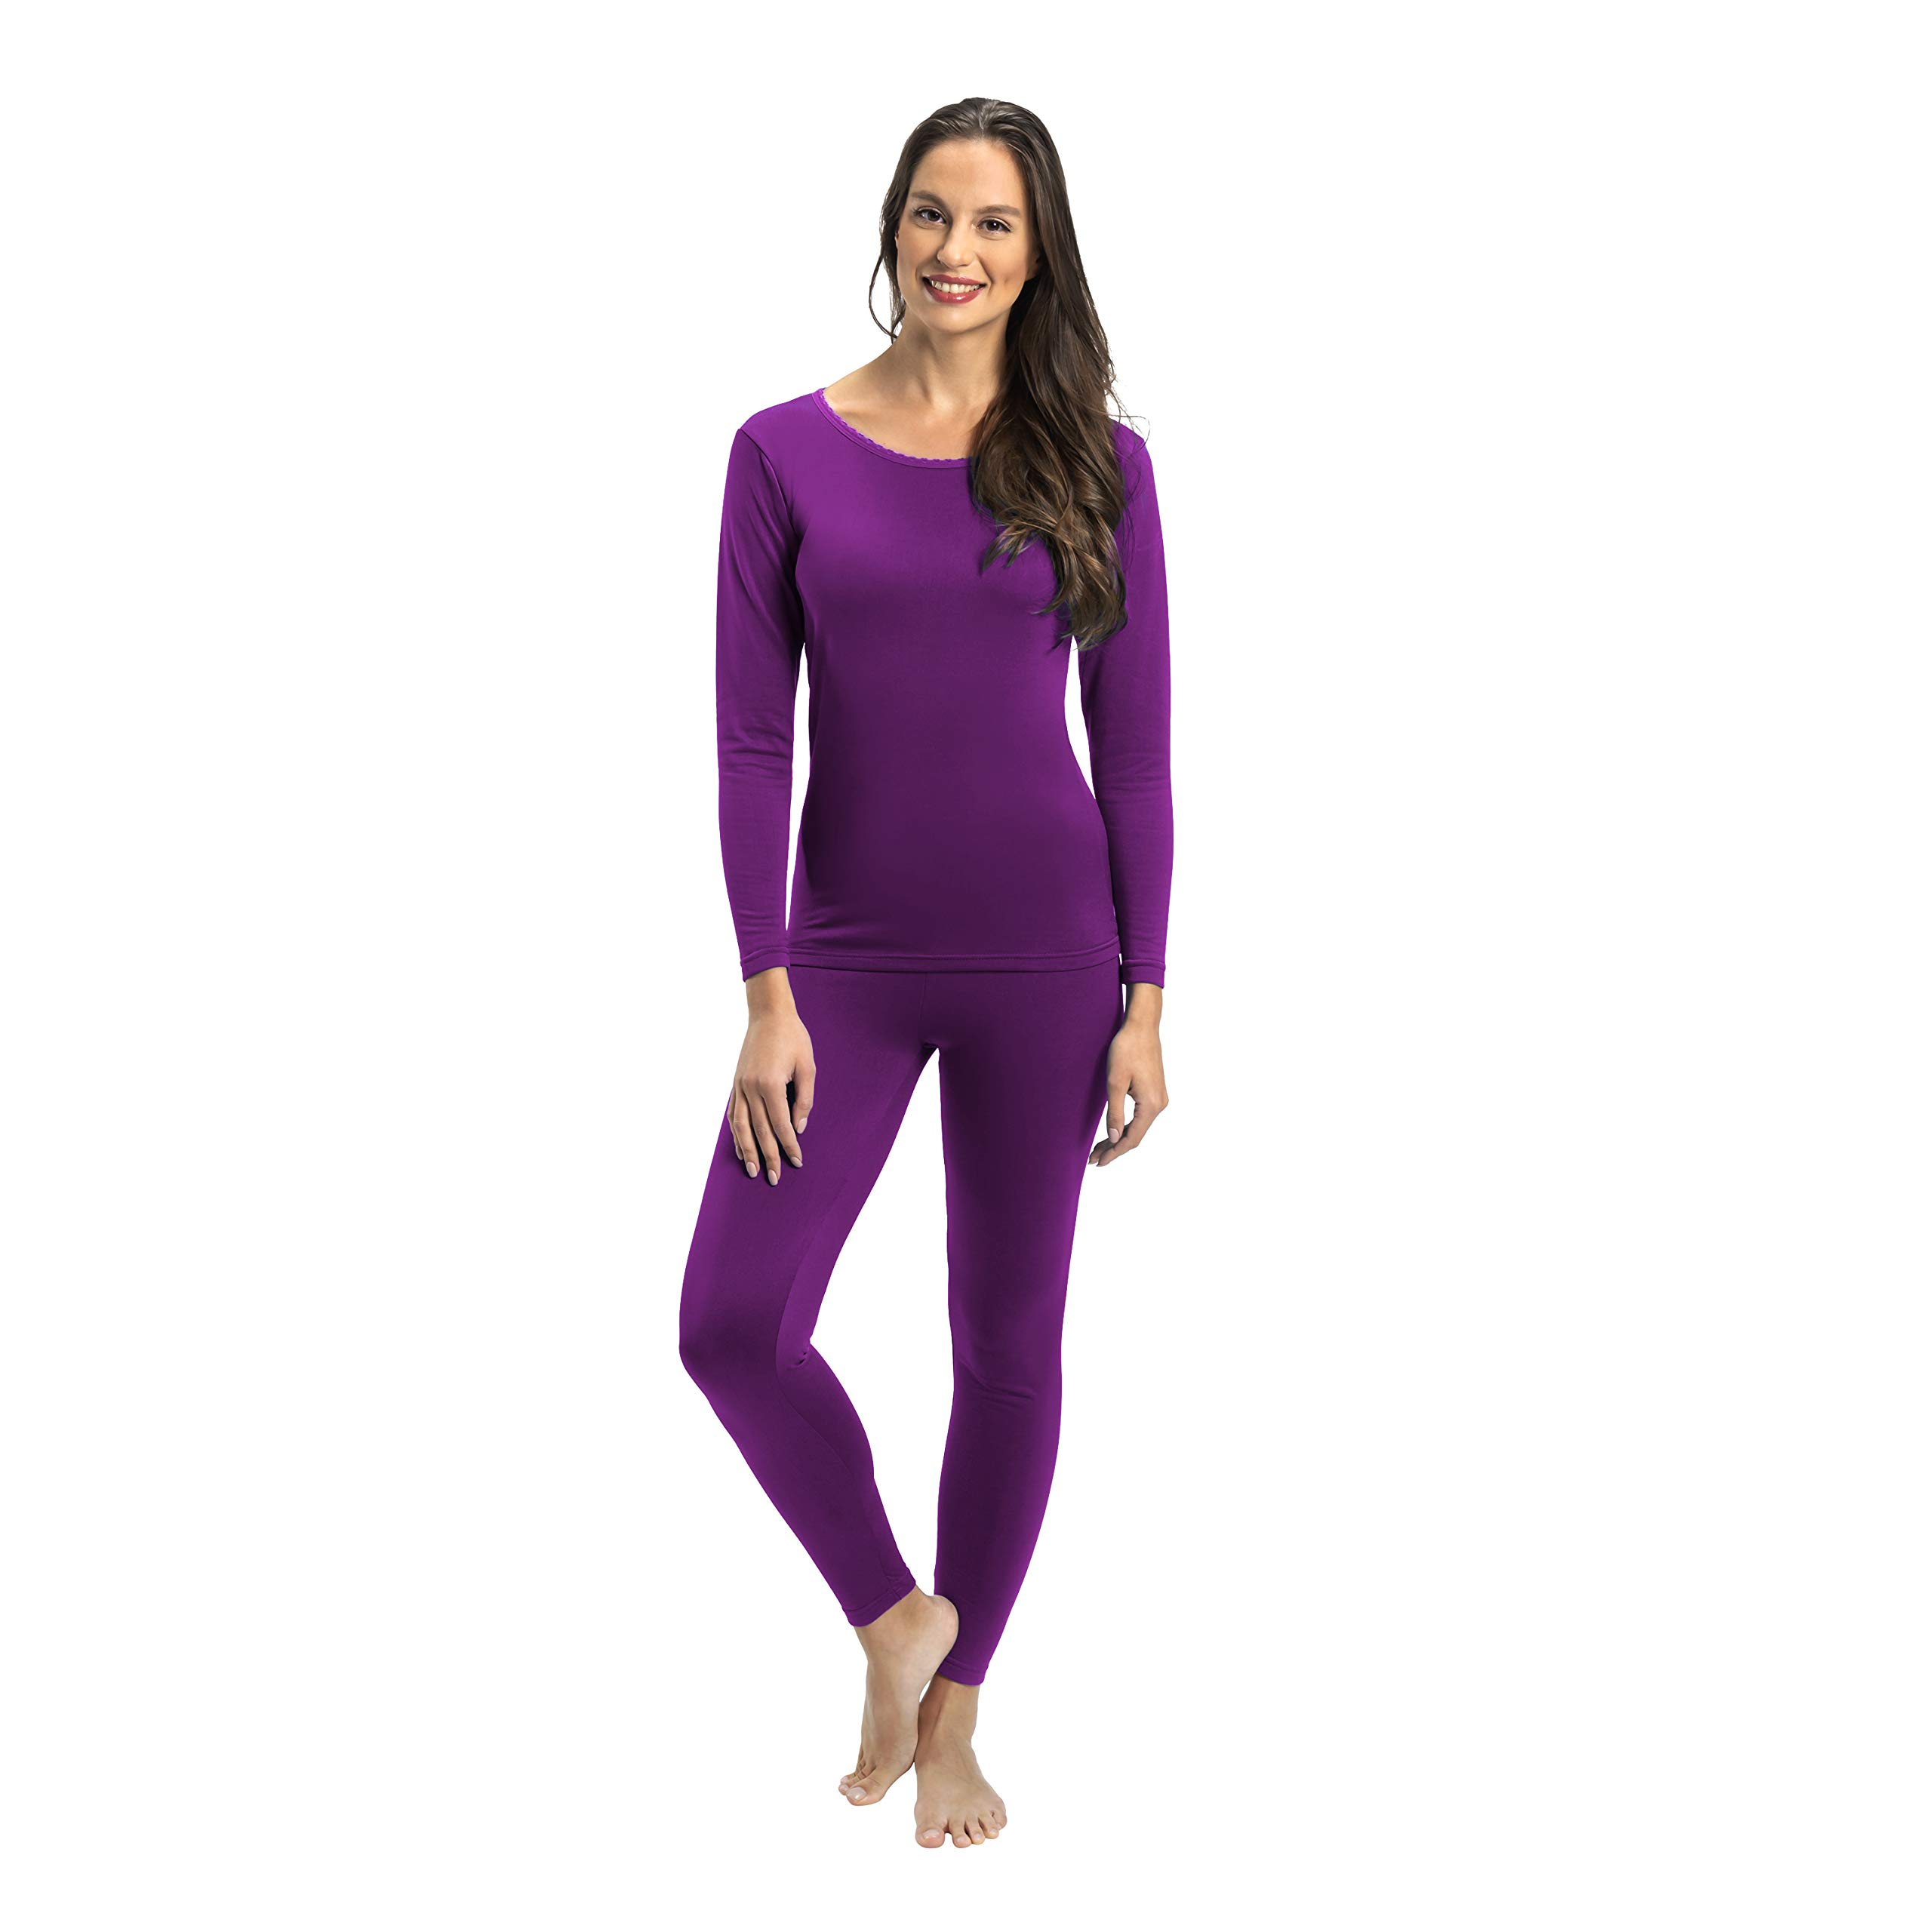 Rocky Womens Thermal 2 Pc Long John Underwear Set Top and Bottom Smooth Knit (Small, Purple) by Rocky